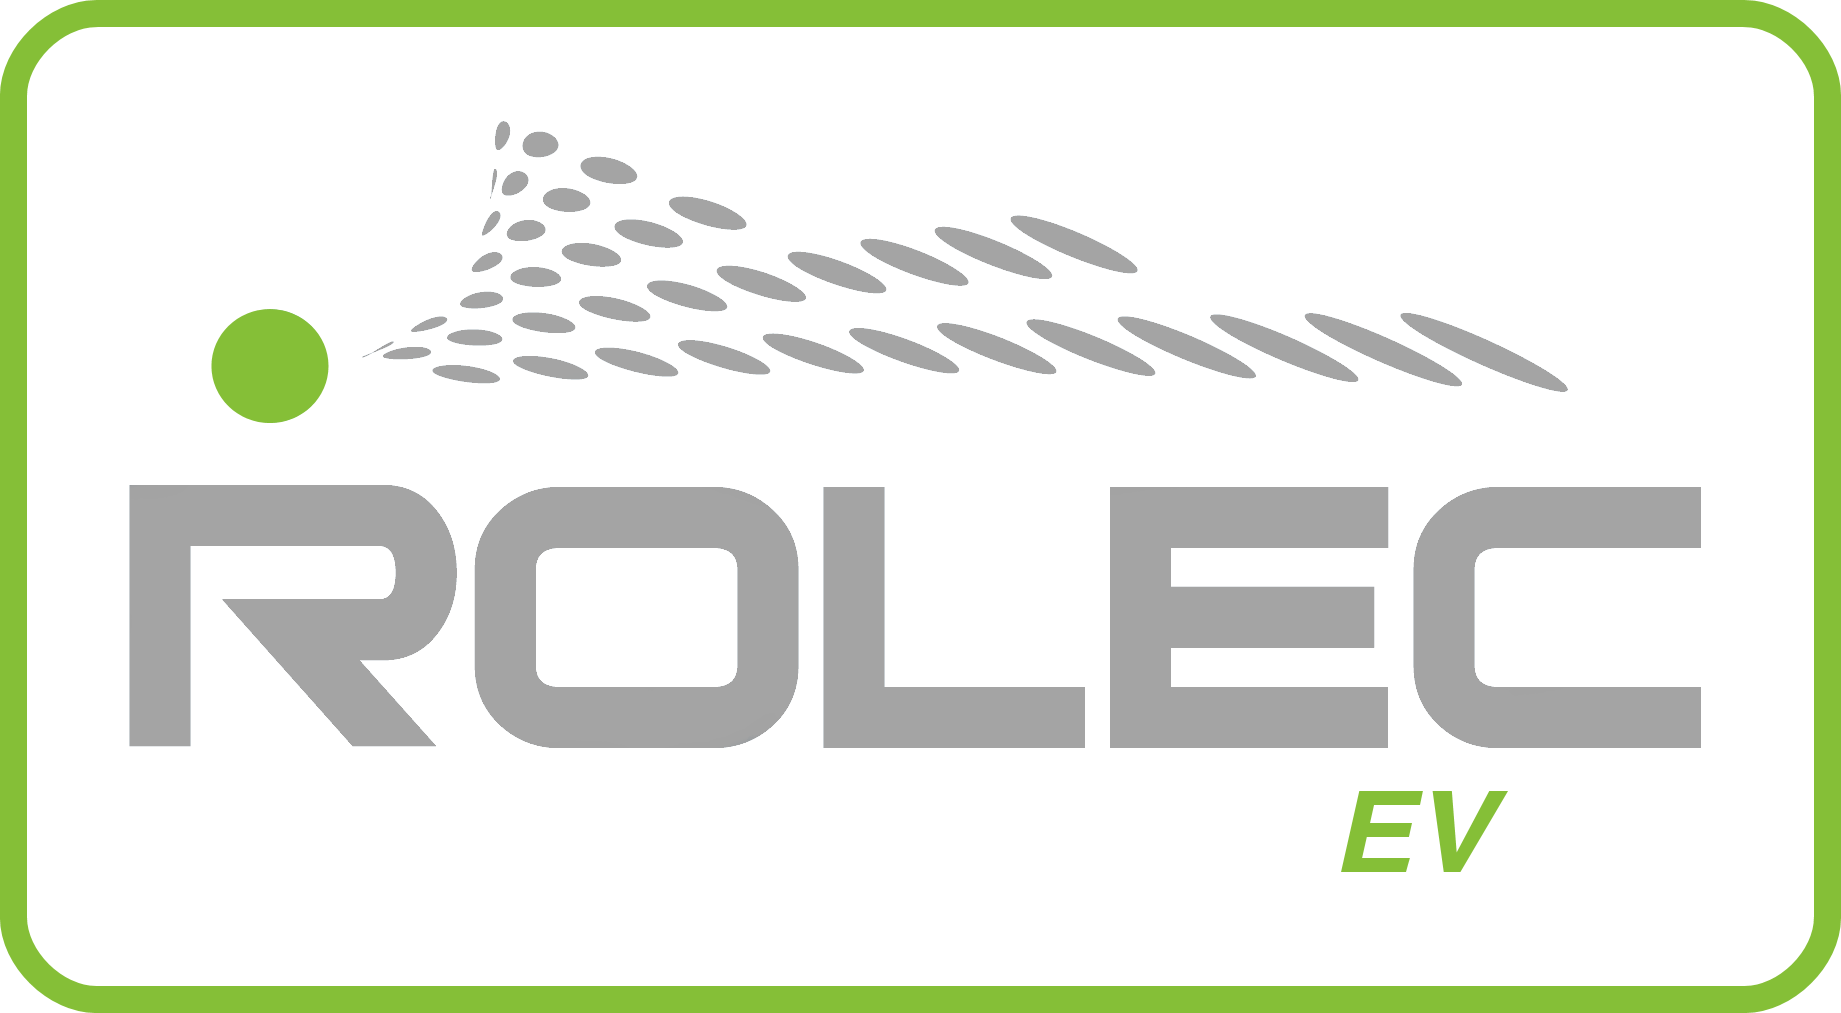 rolec_logo_eed.png